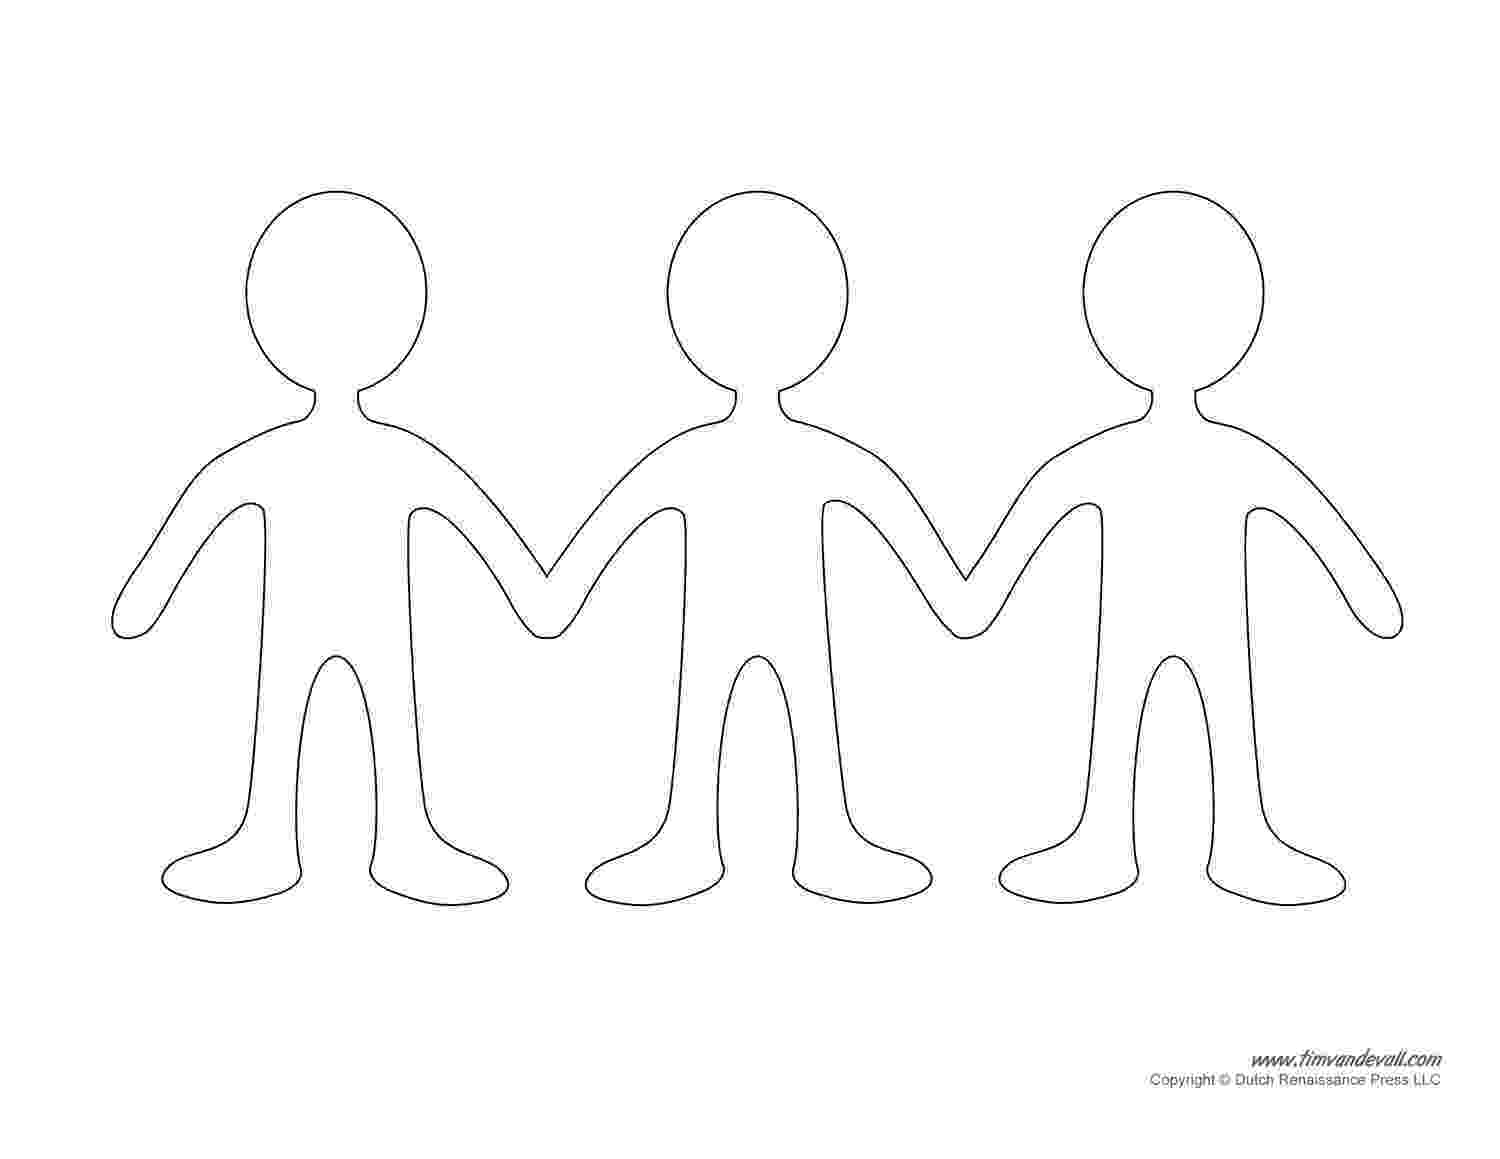 paper doll template paper doll template best coloring pages for kids doll template paper